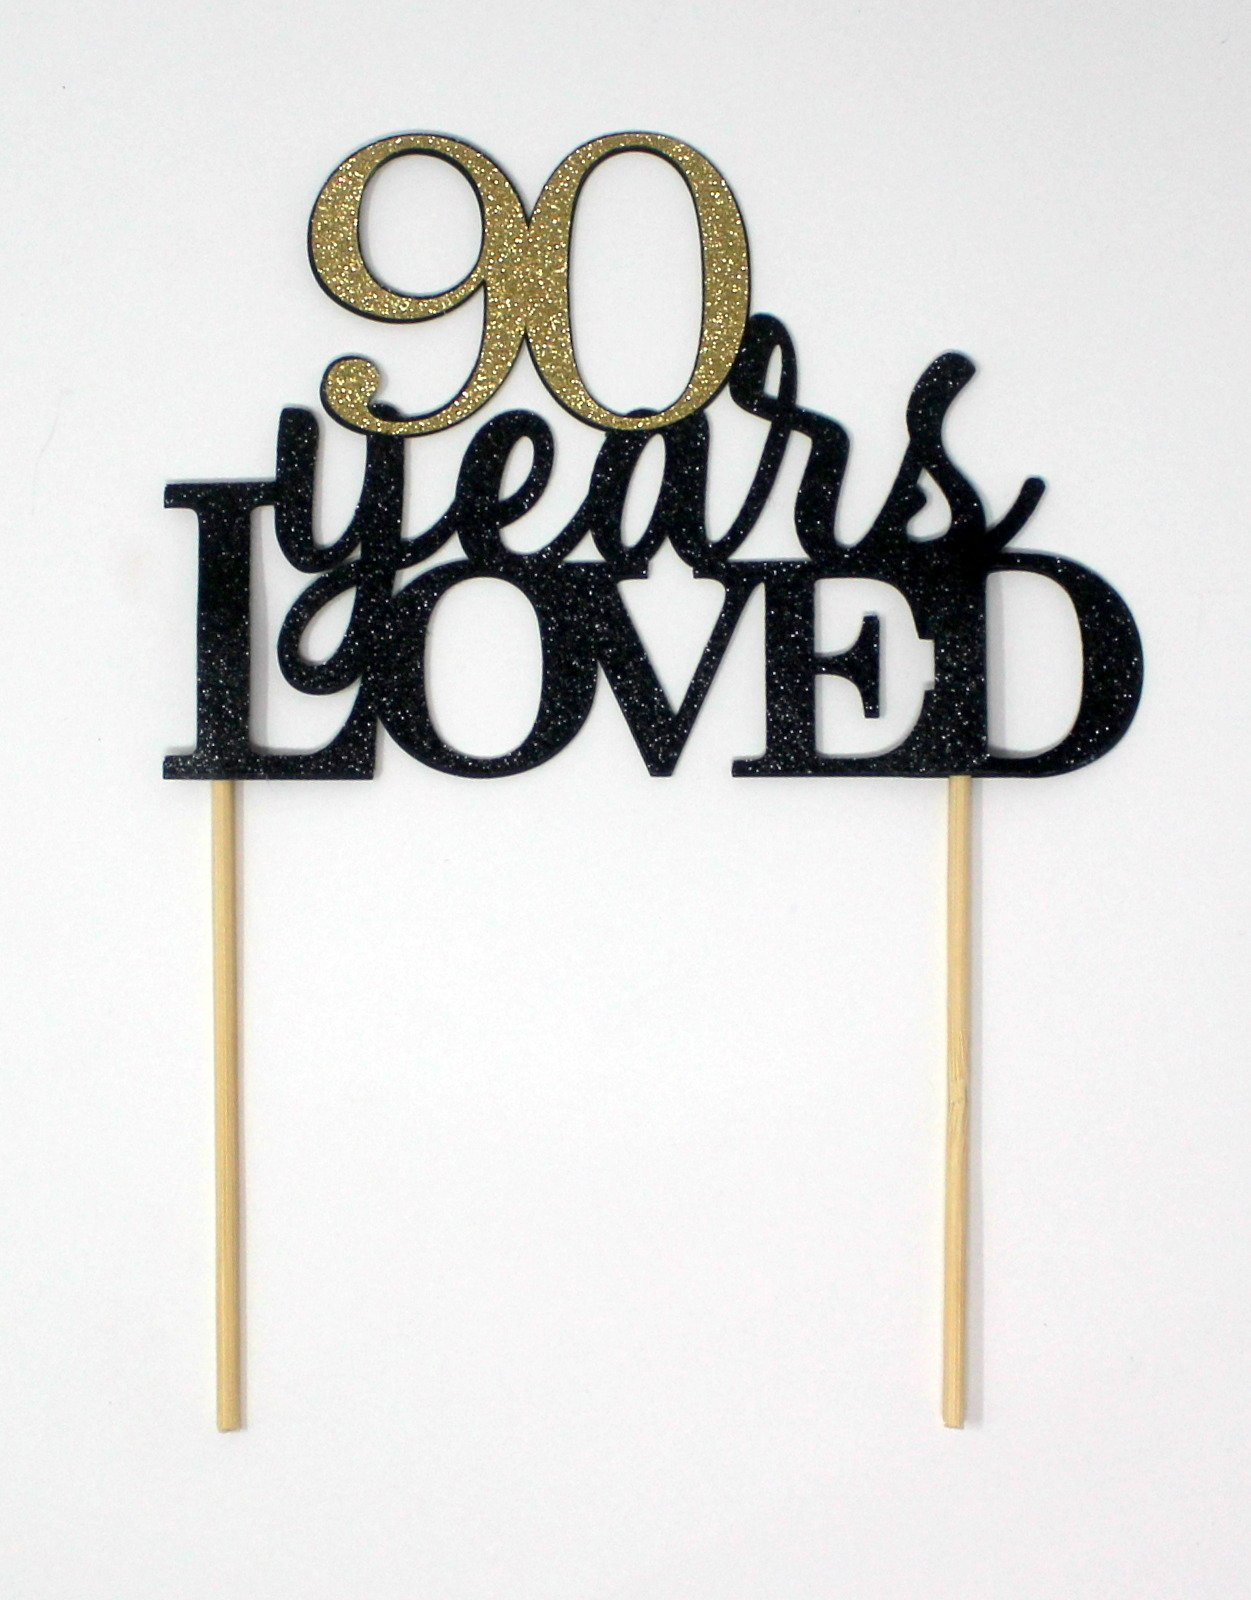 All About Details 90 Years Loved Cake Topper (Black & Gold)